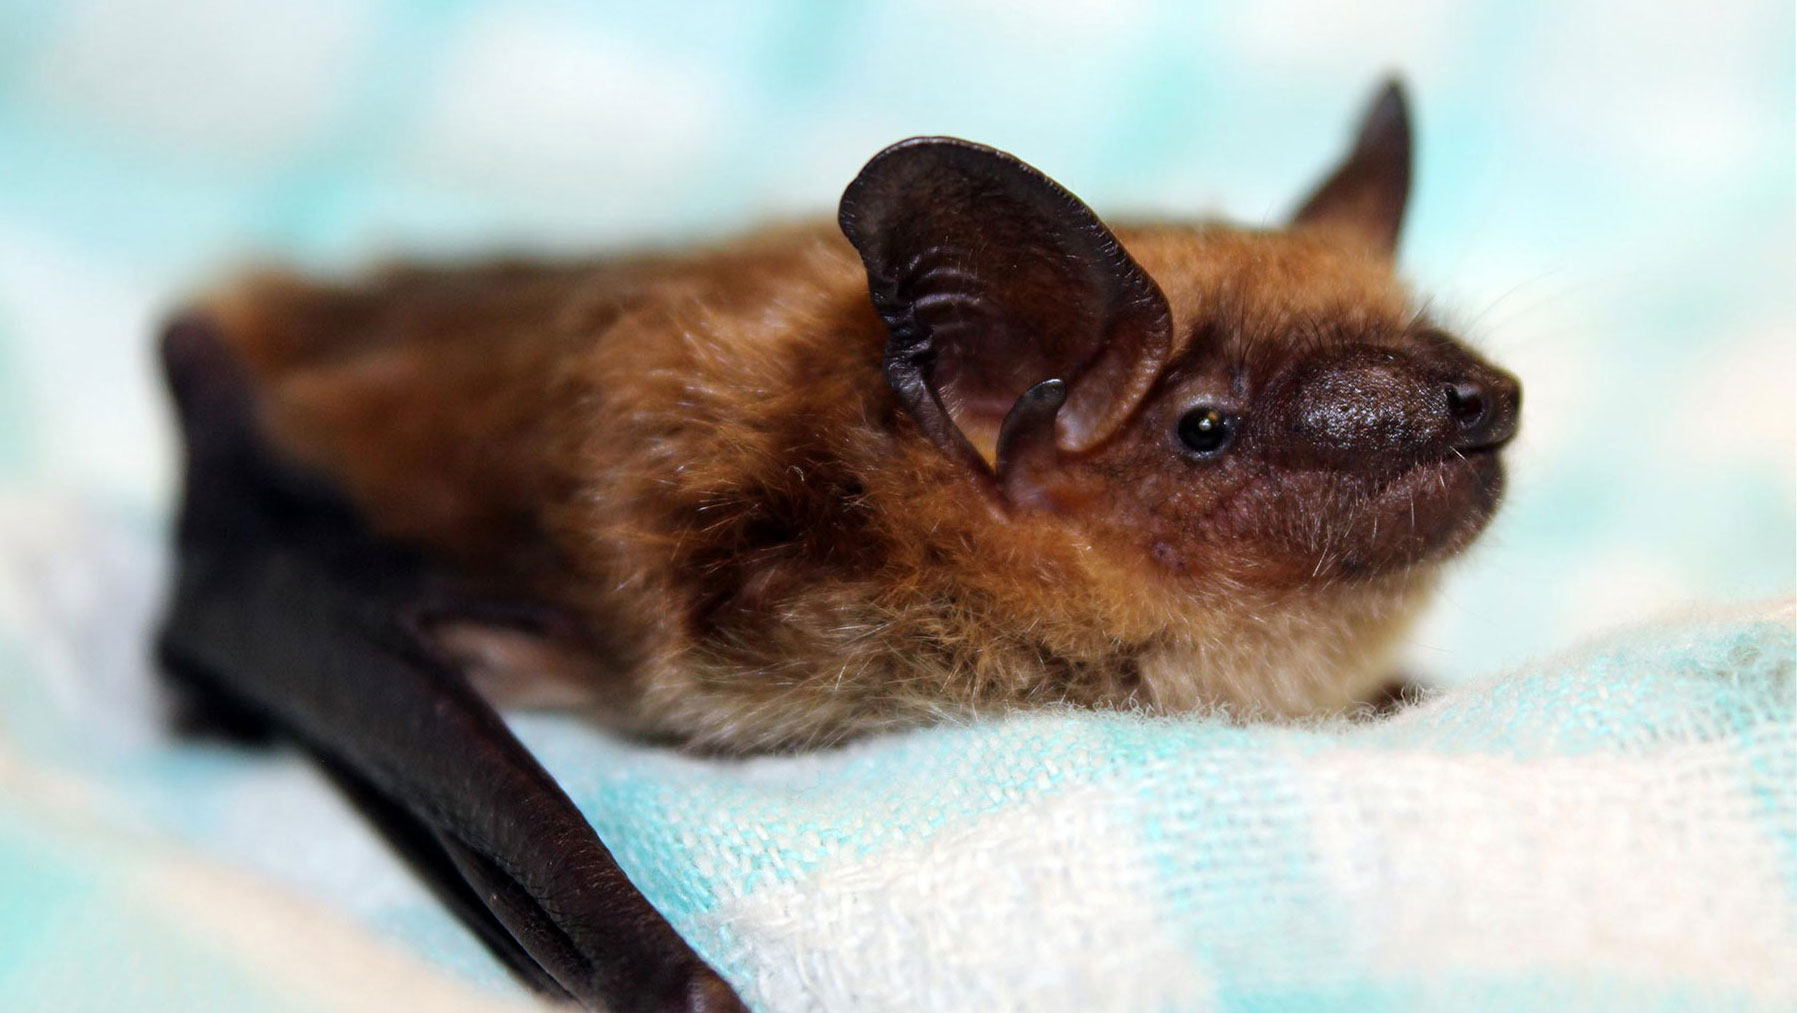 Rescued bat sitting on a blanket